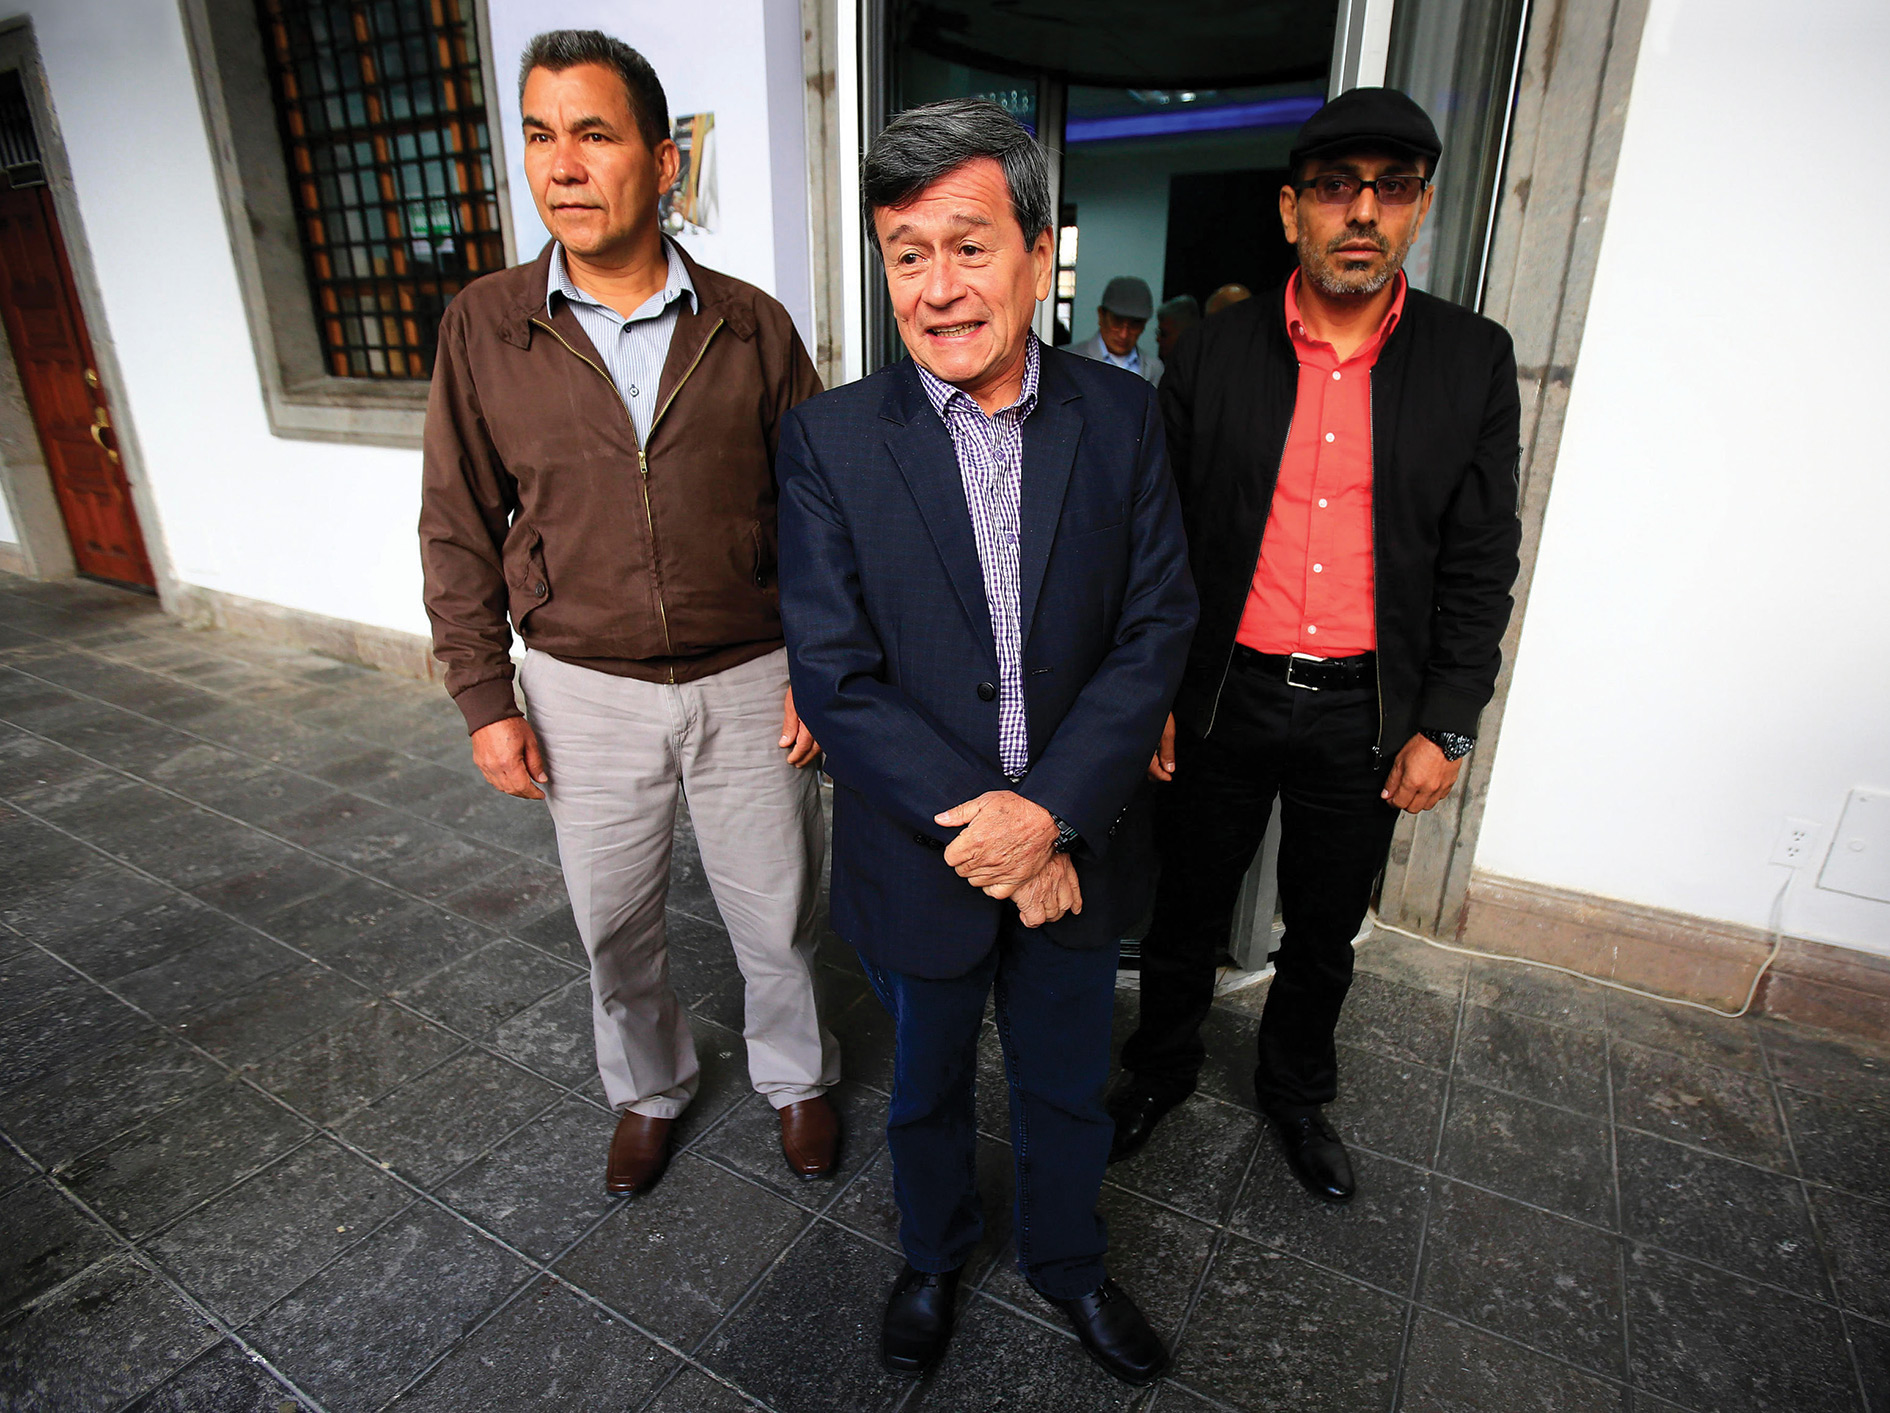 Pablo Beltrán and others in the ELN's peace delegation address the media during talks in Quito earlier this year.